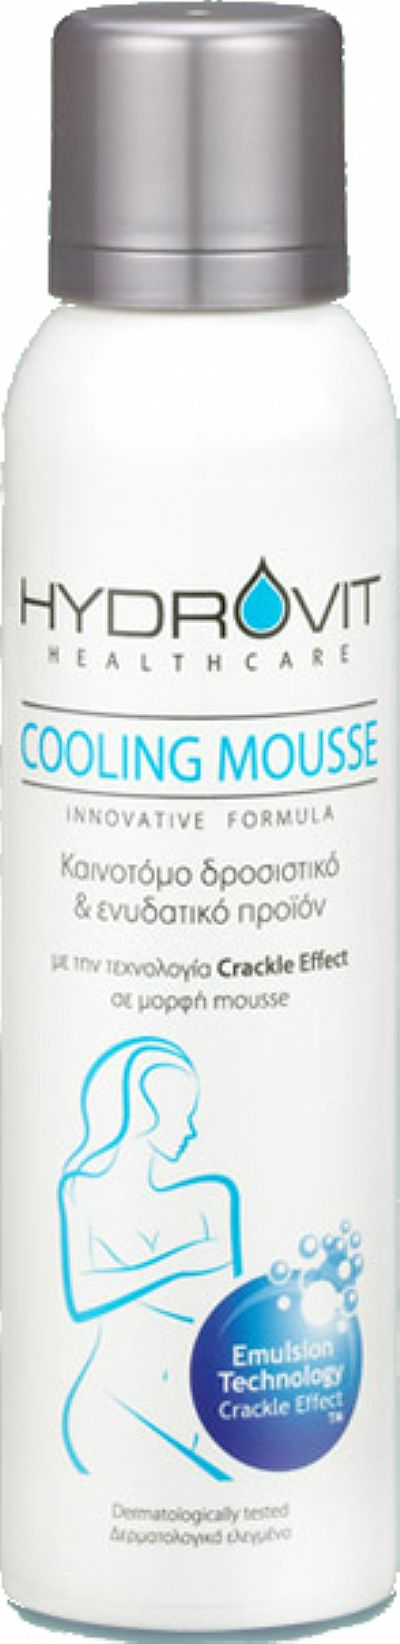 Hydrovit Cooling Mousse 150ml